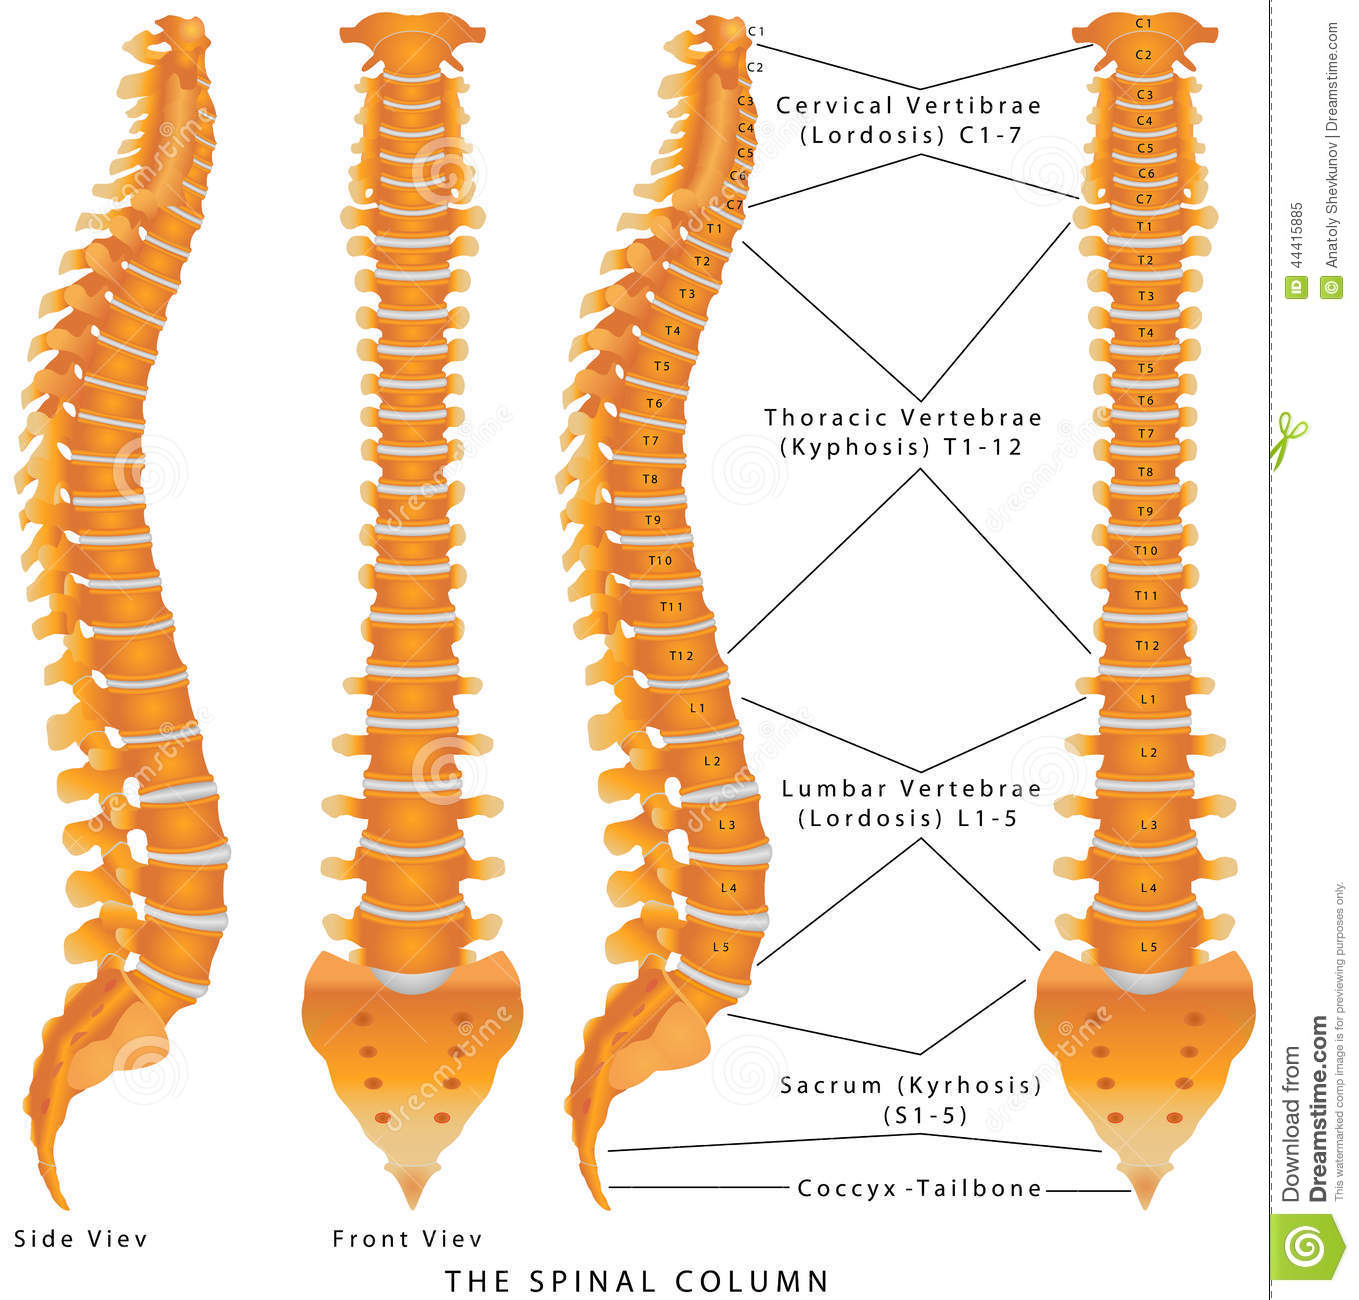 typical thoracic vertebrae diagram parts of a cow the spinal column stock image posture disc